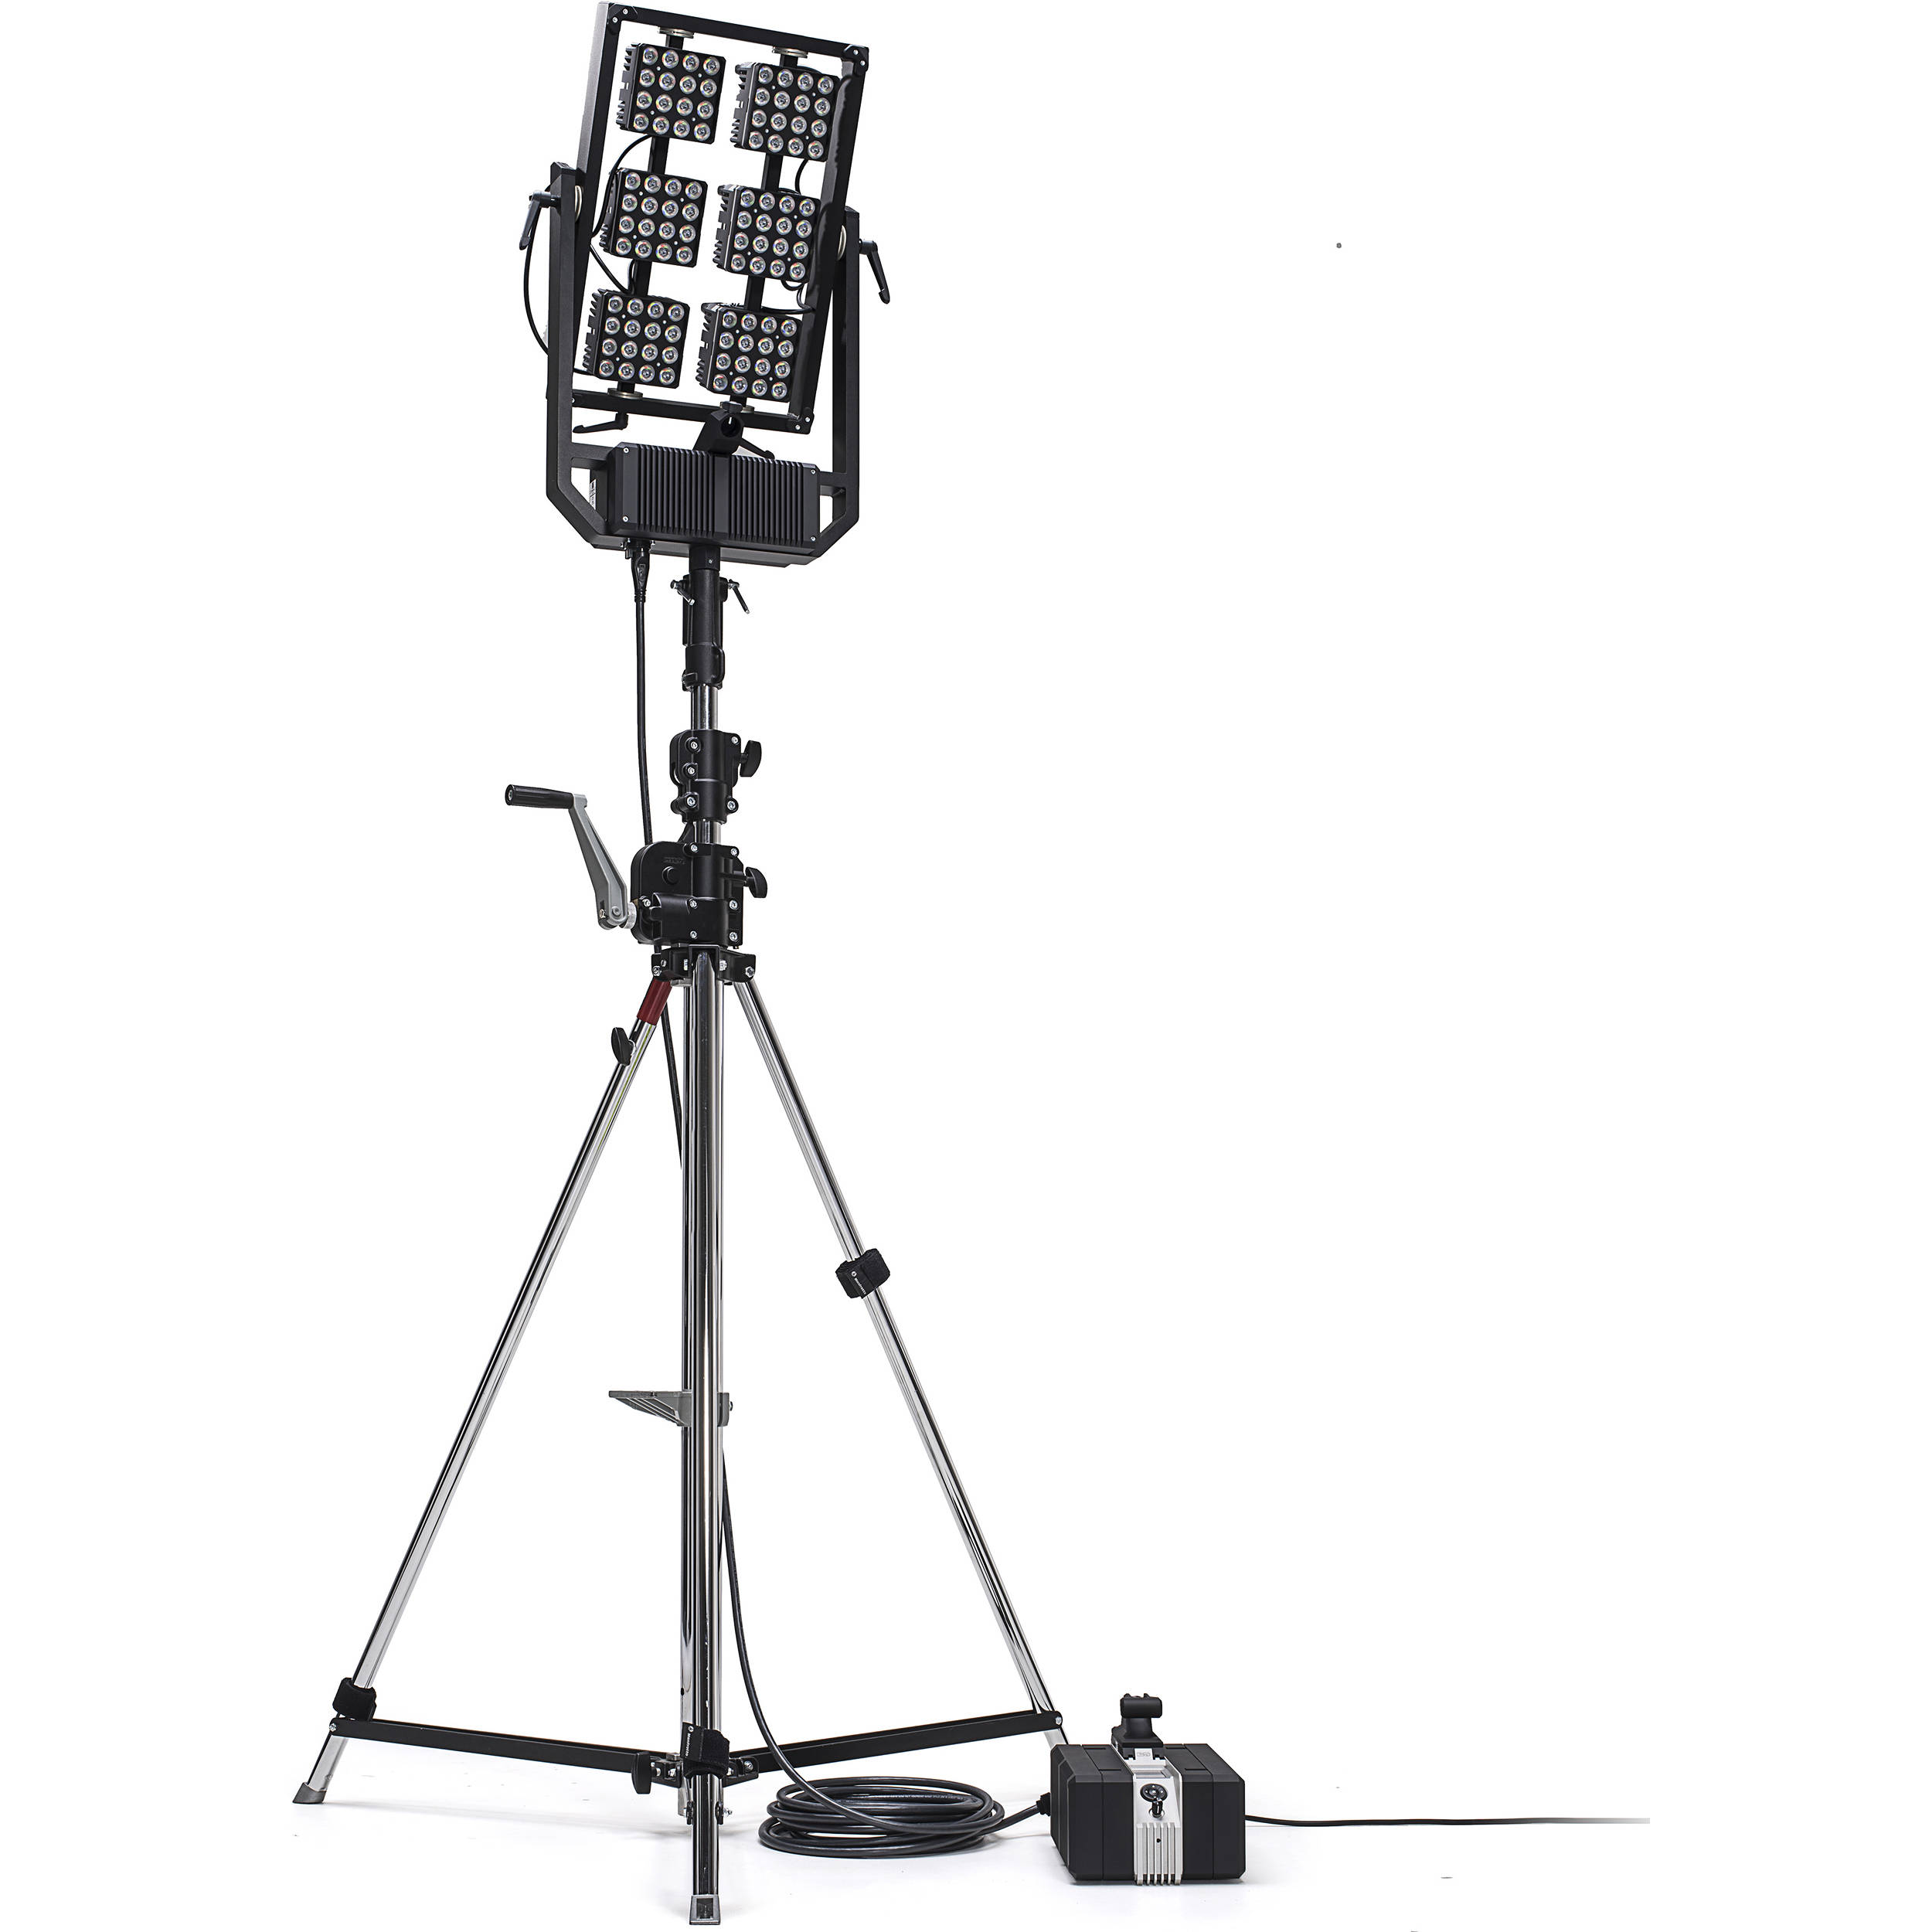 Digital Sputnik DS6 LED Frame Wireless ArtNet System